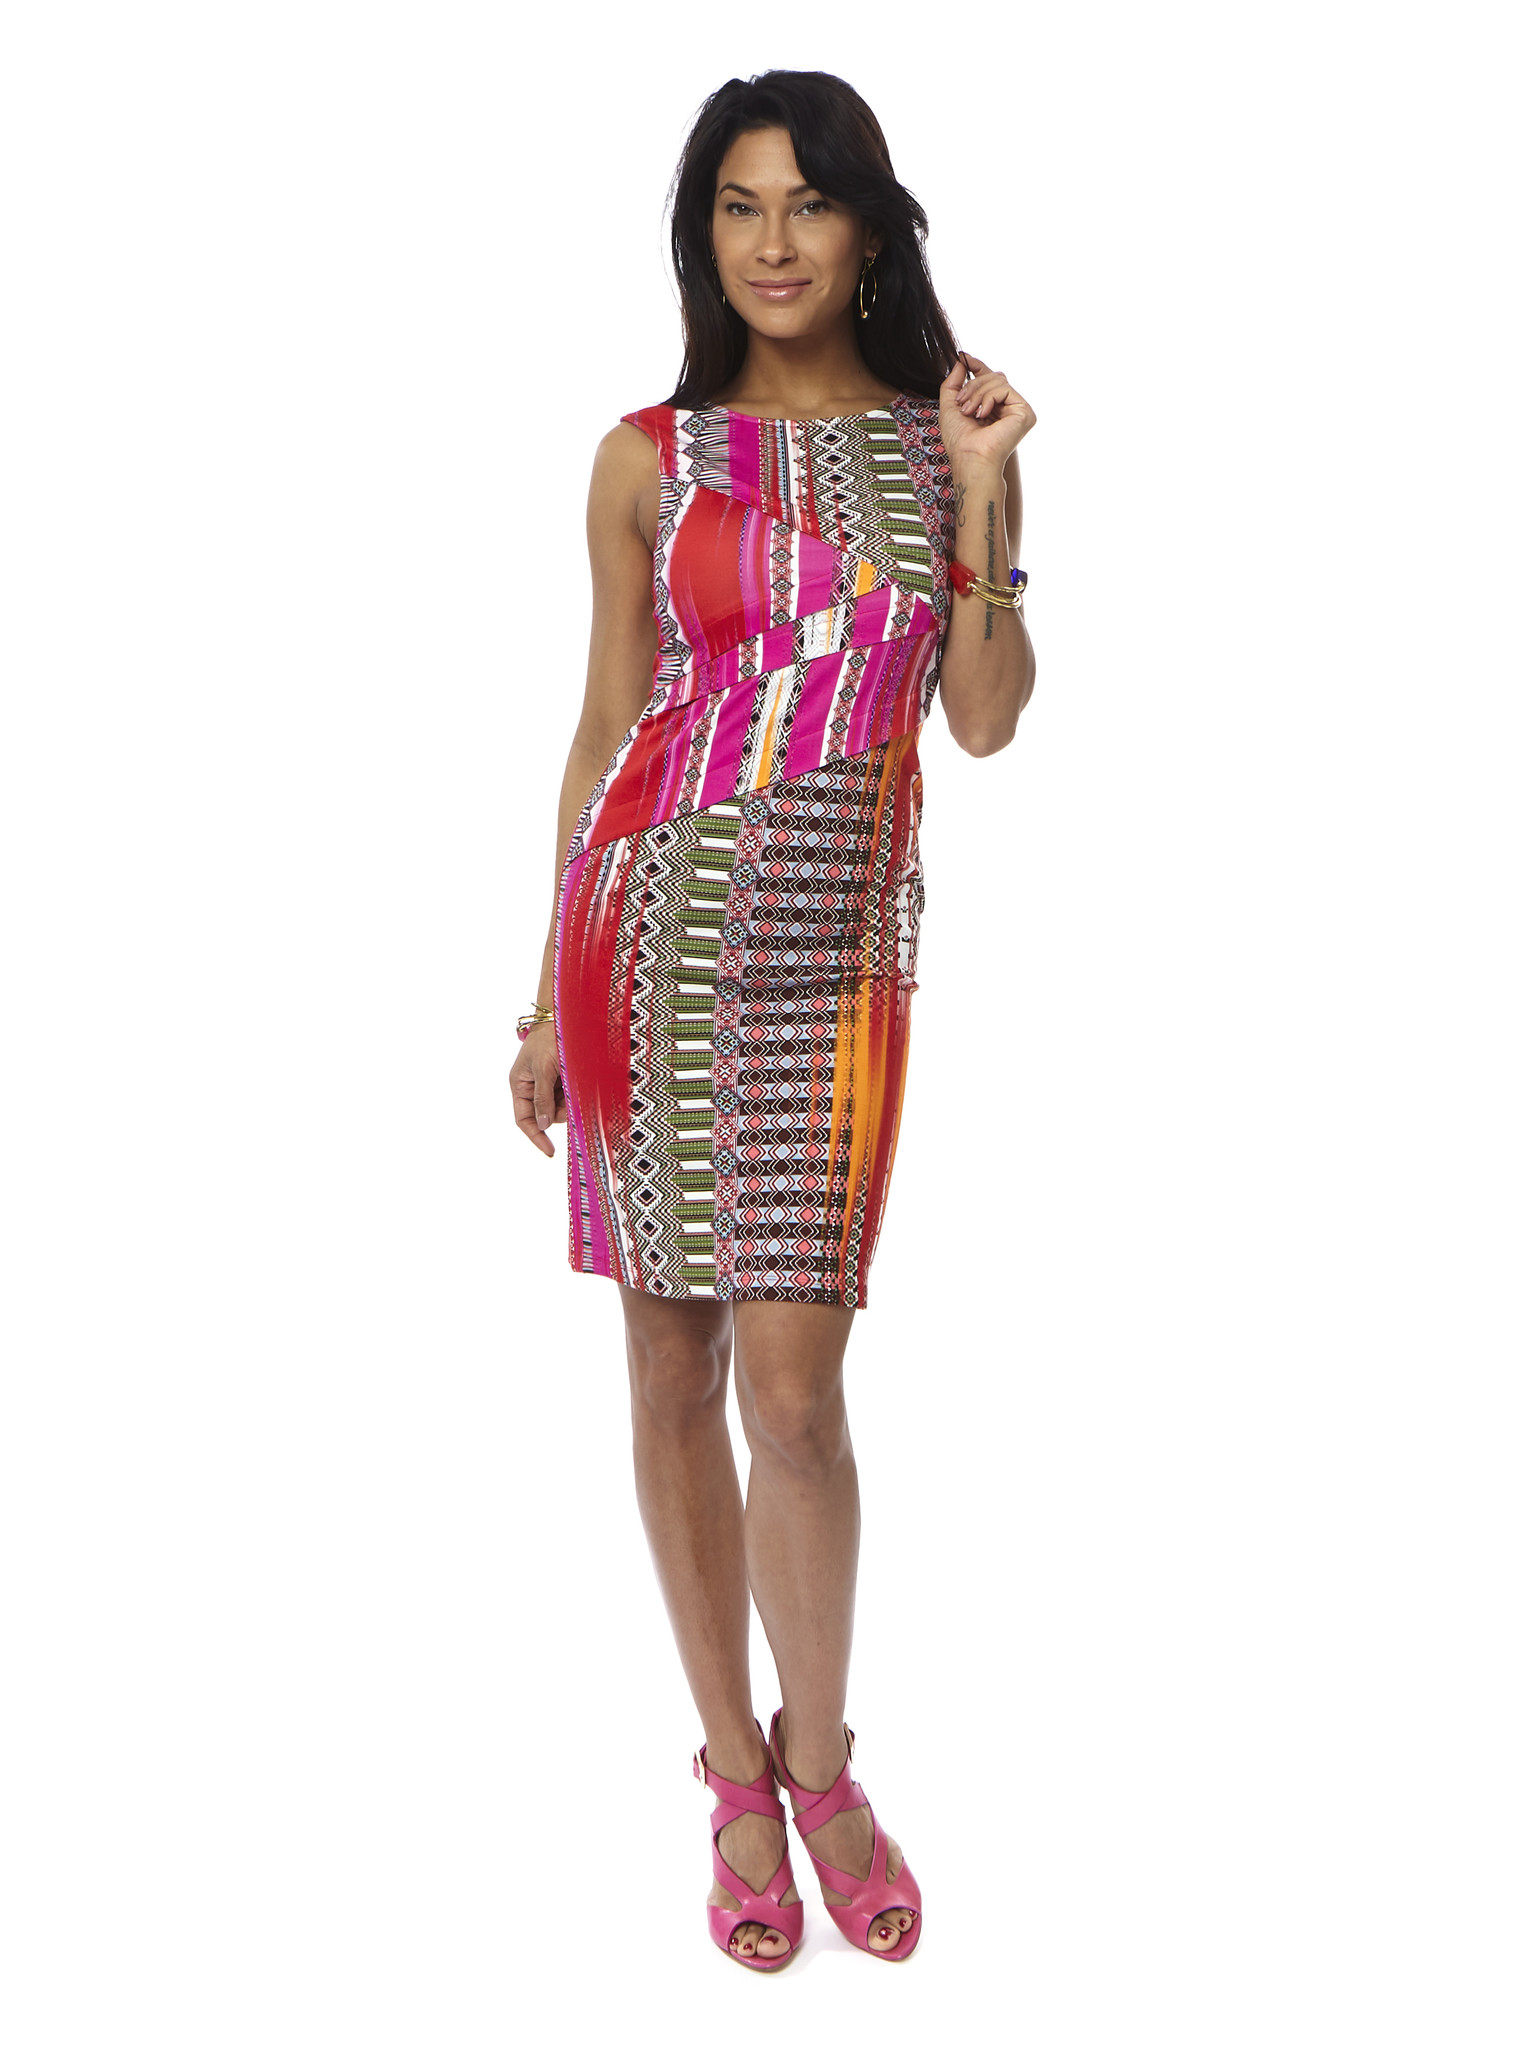 TESSA KOOPS CLAUDIA PERU  DRESS